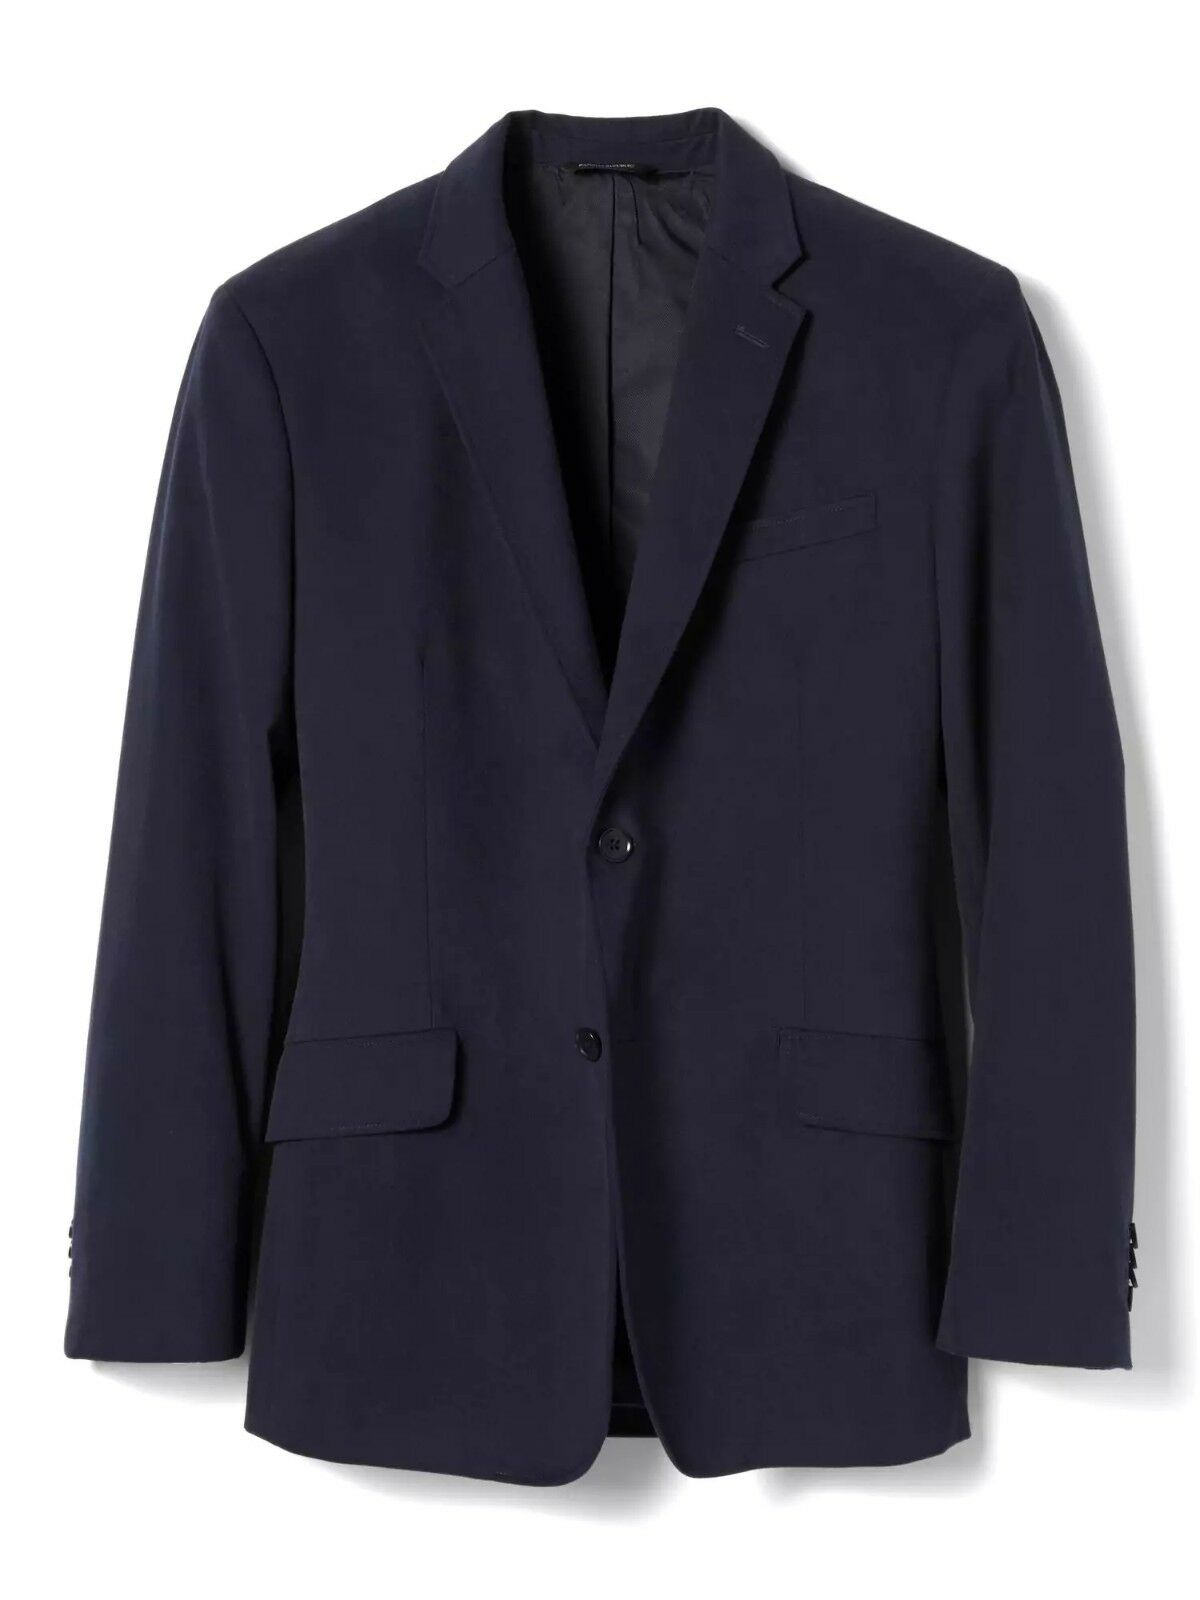 Banana Republic Standard Two-Button Cotton Sport Coat,Navy SIZE 40S 40 S  542252